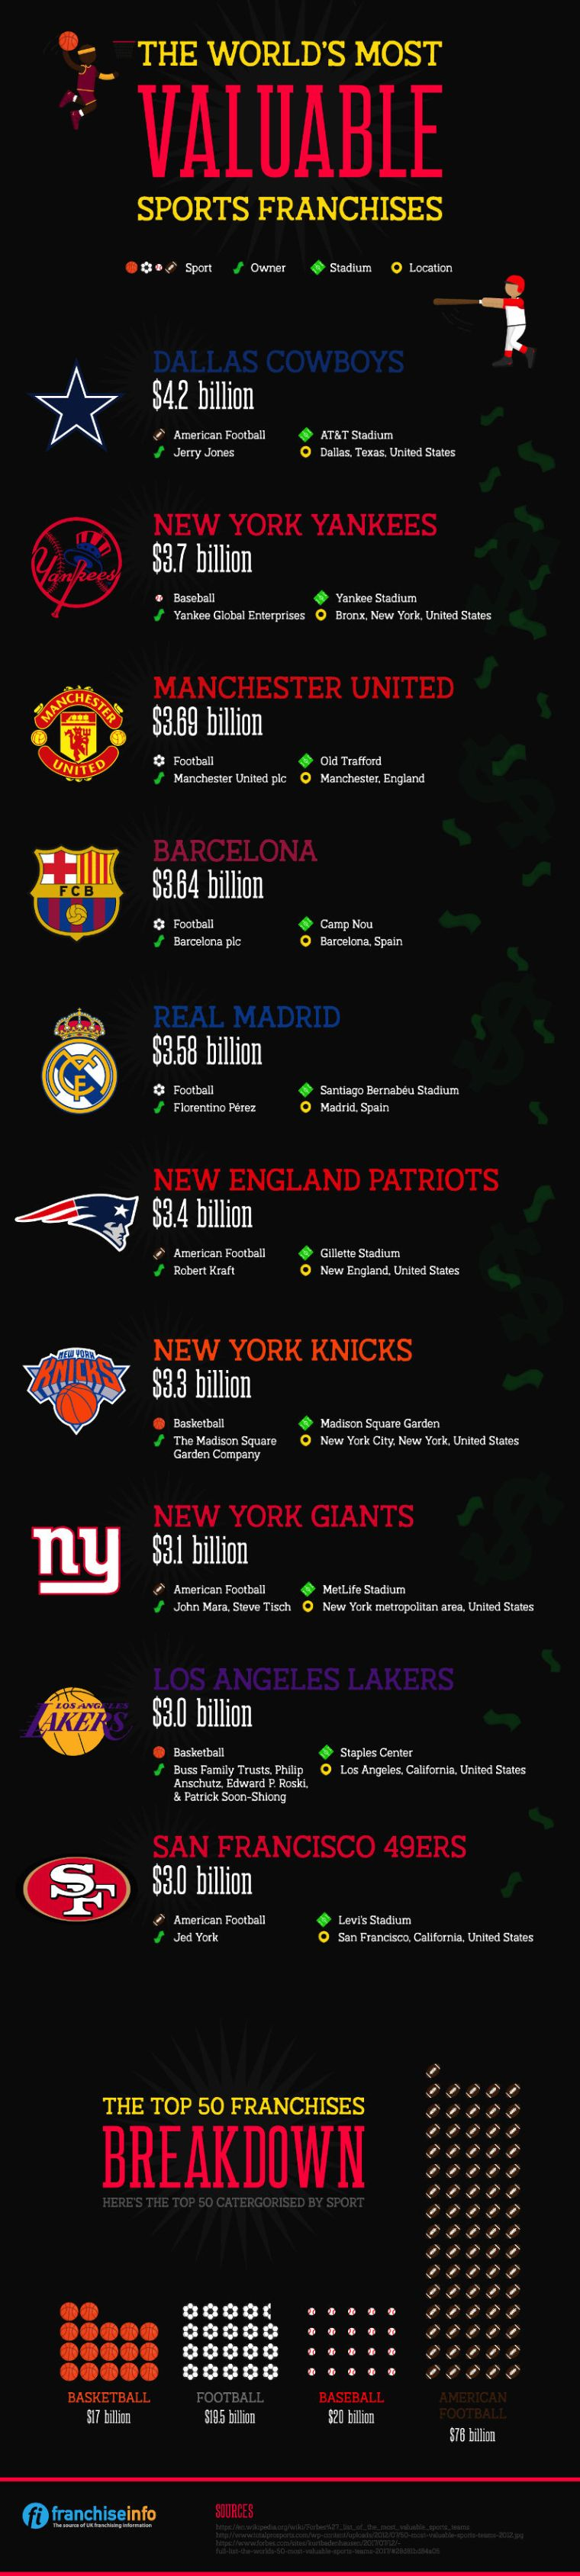 Worlds most valuable sporting franchises - infographic